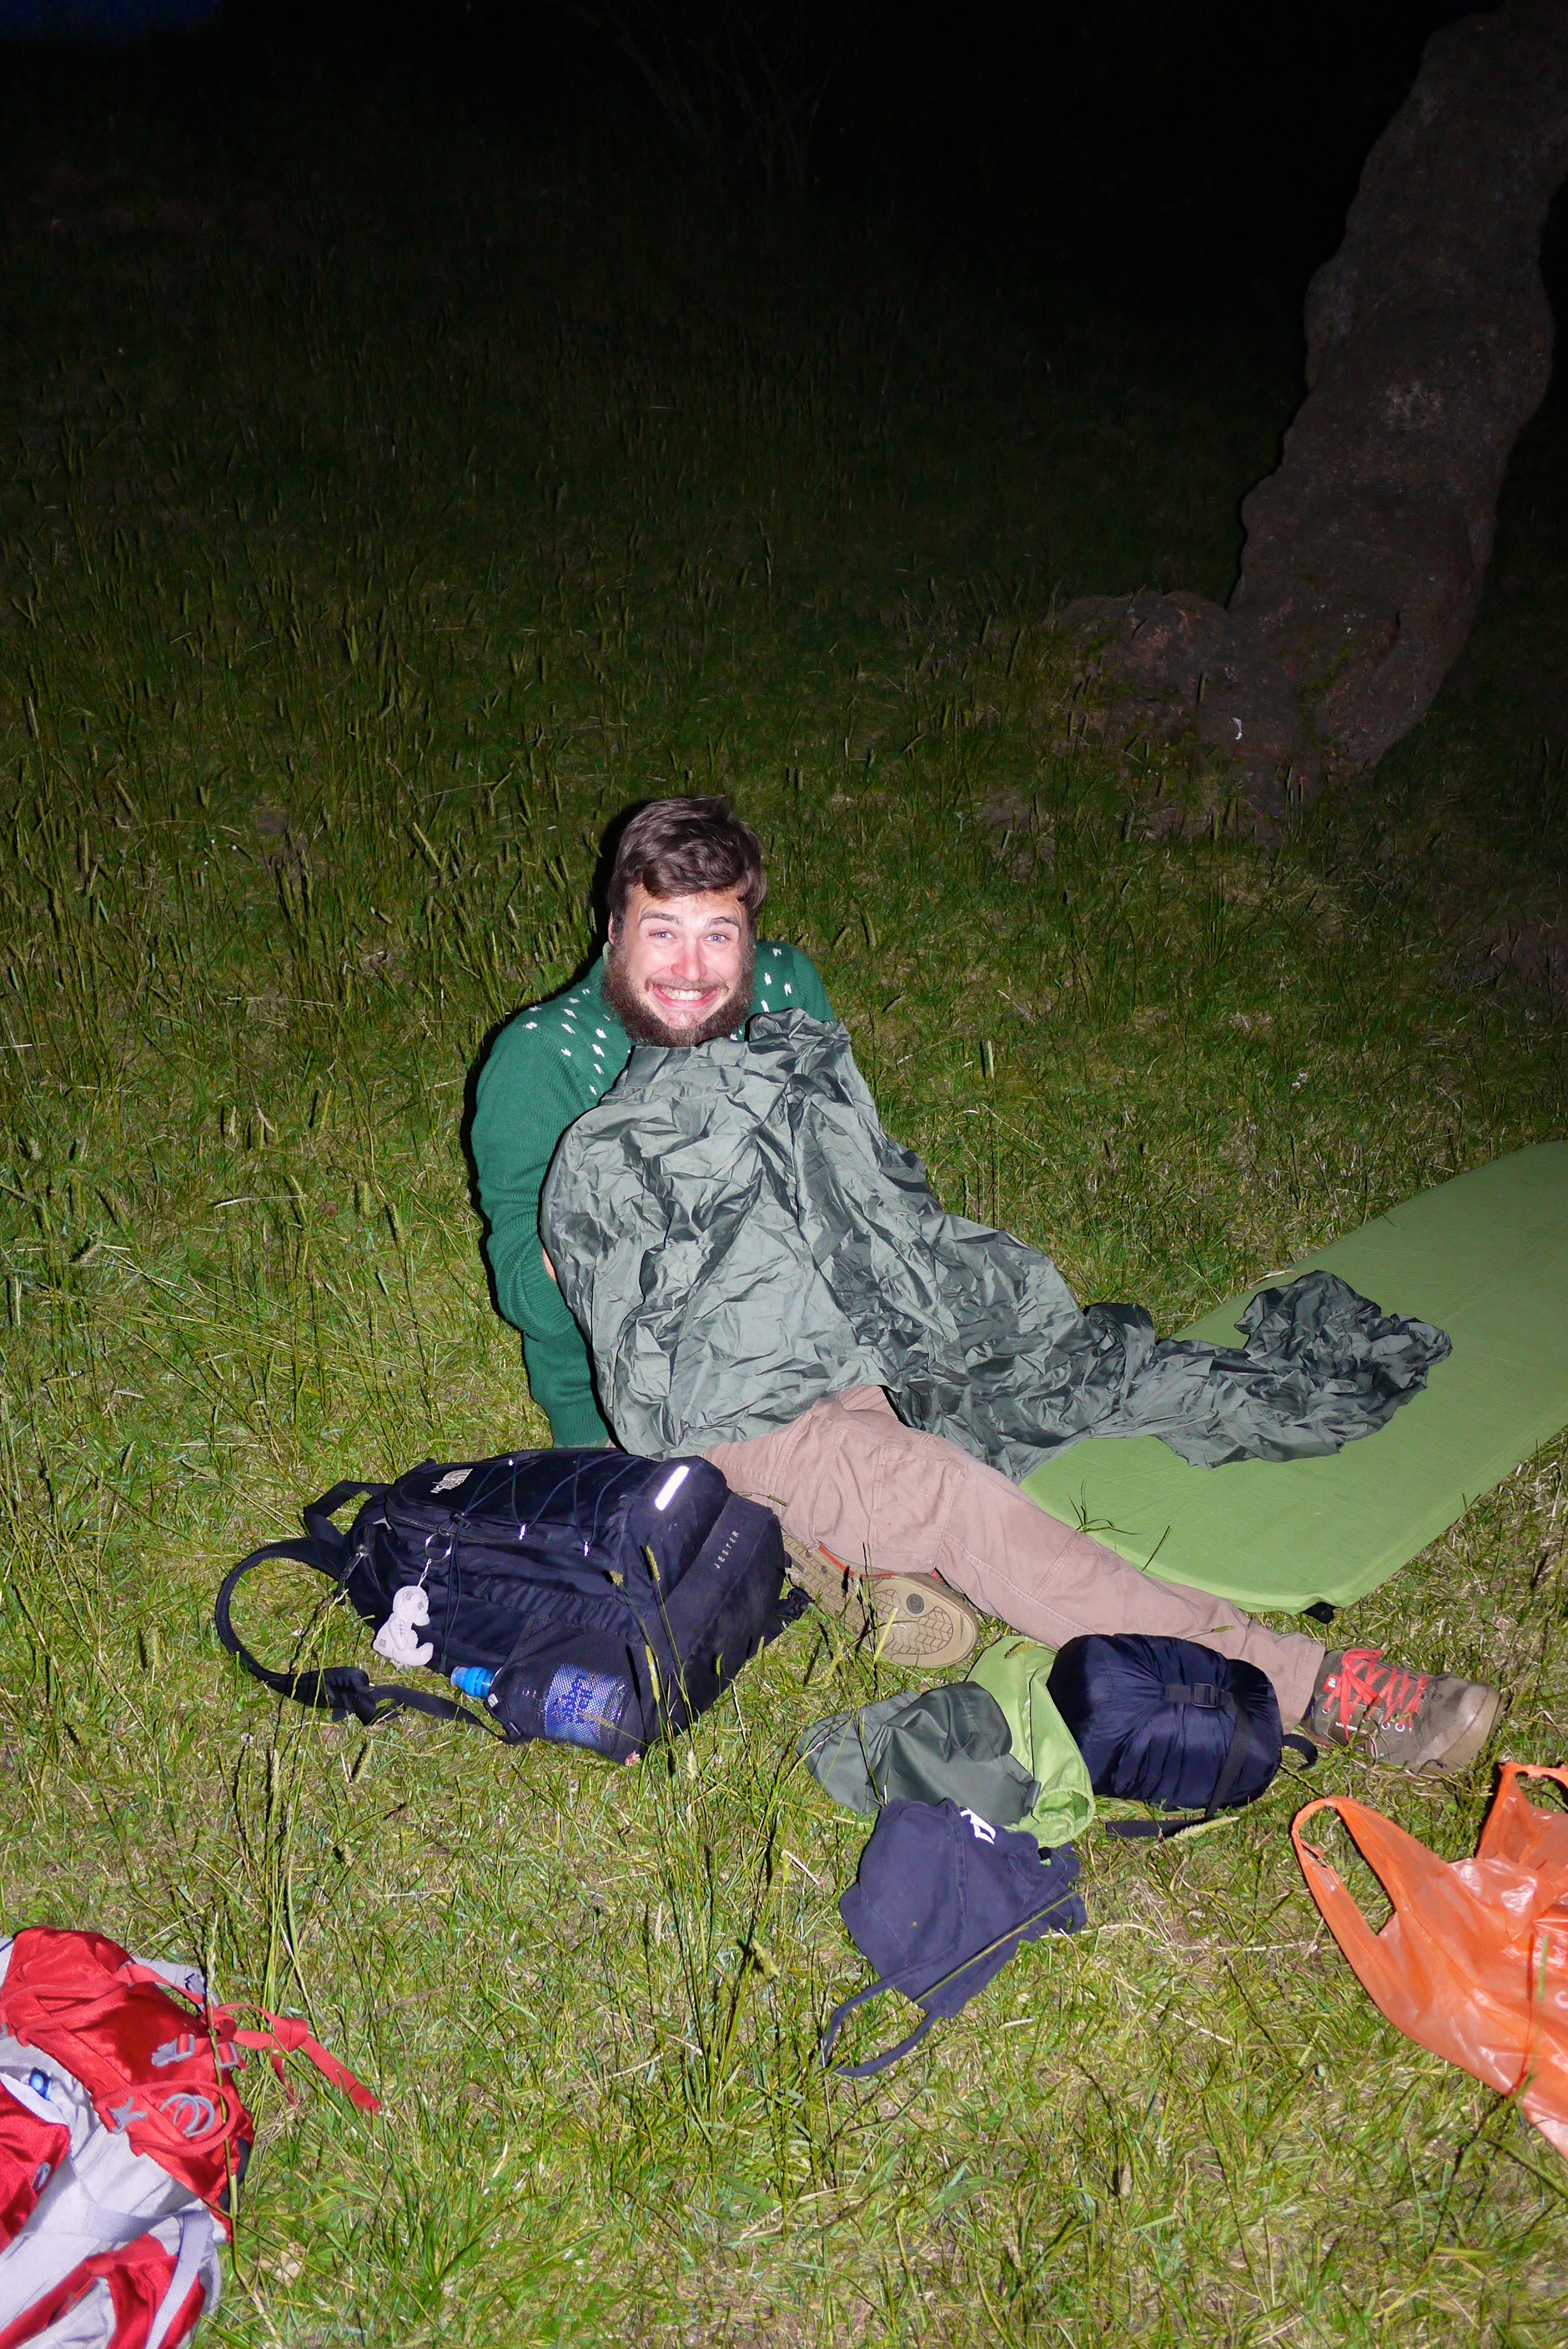 Rich gets very excited about popping his microadventure cherry